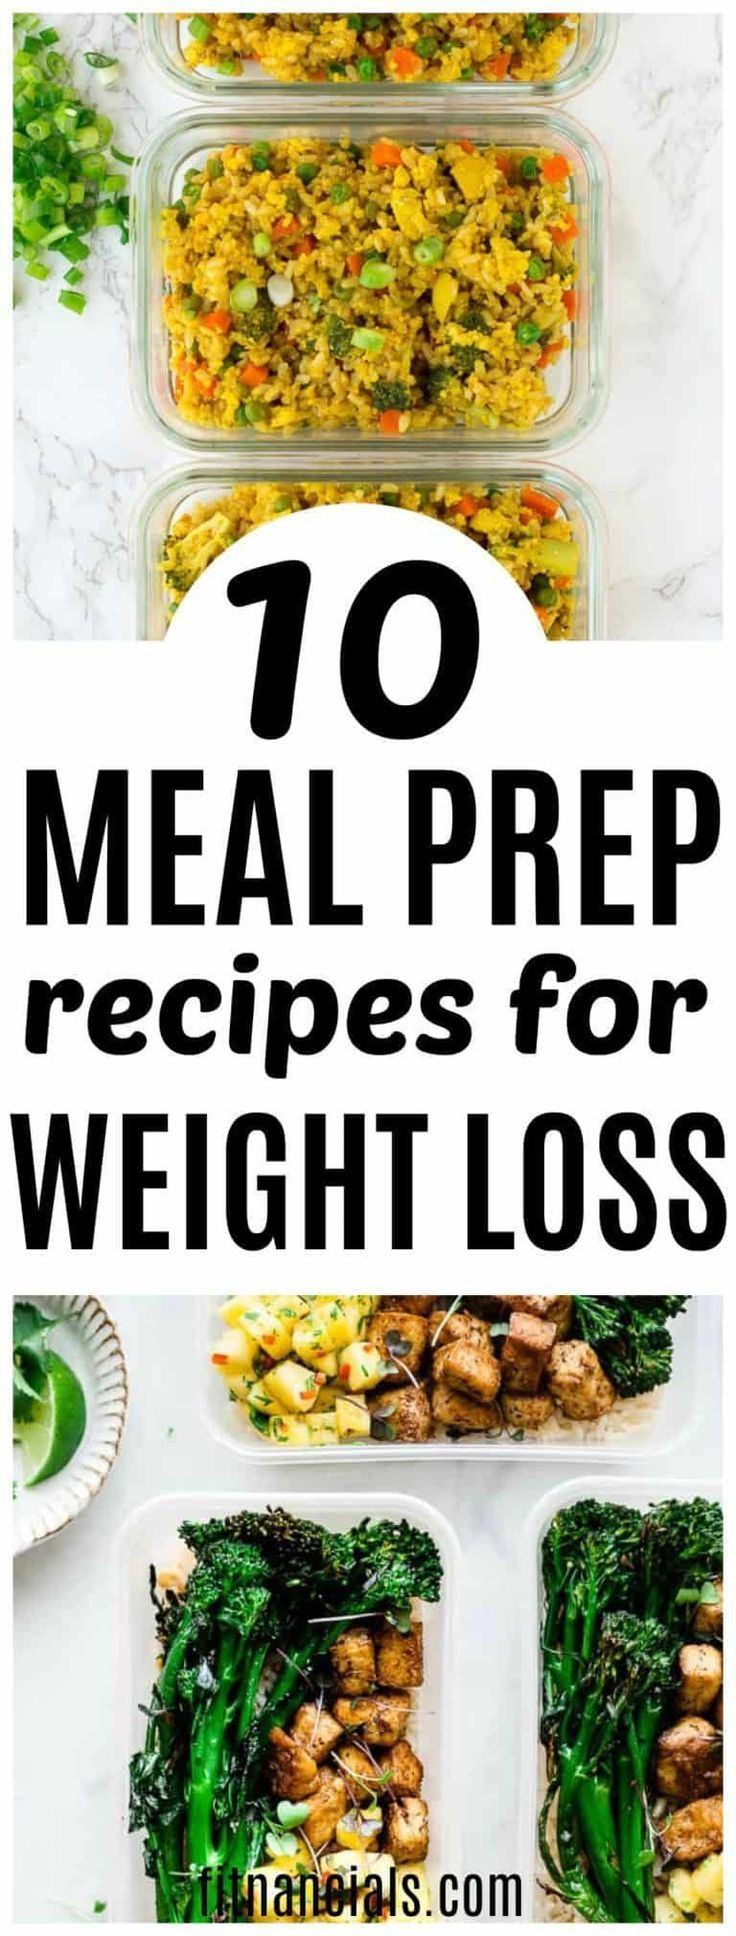 10+ Meal Prep Recipes For Weight Loss images